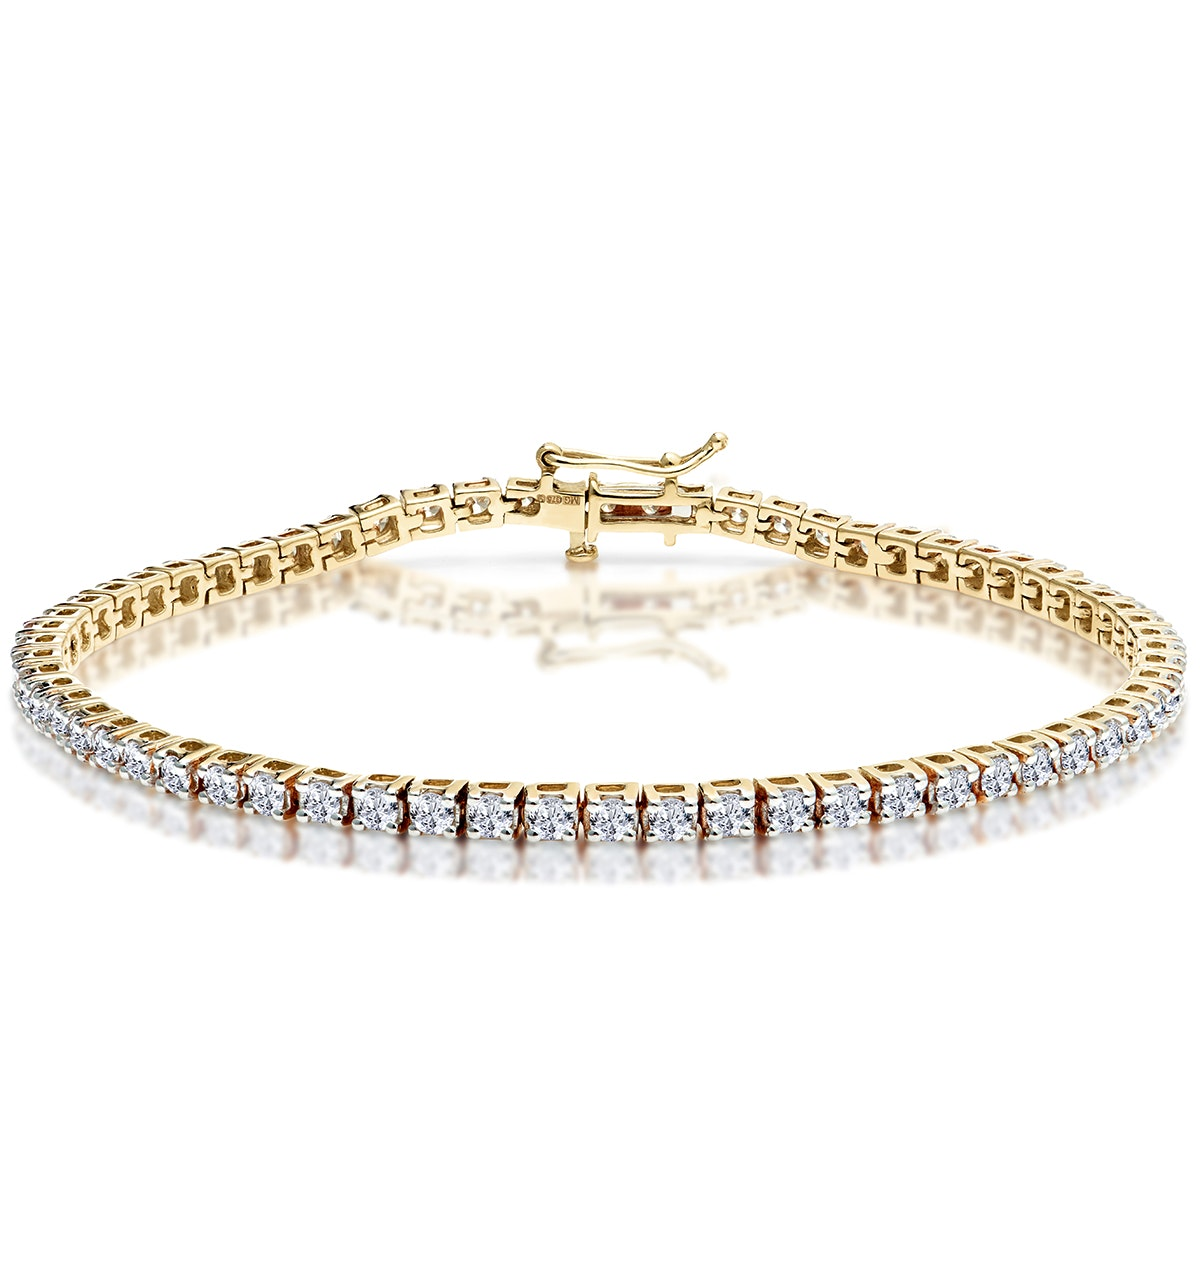 3ct Diamond Tennis Bracelet Claw Set in 9K Yellow Gold